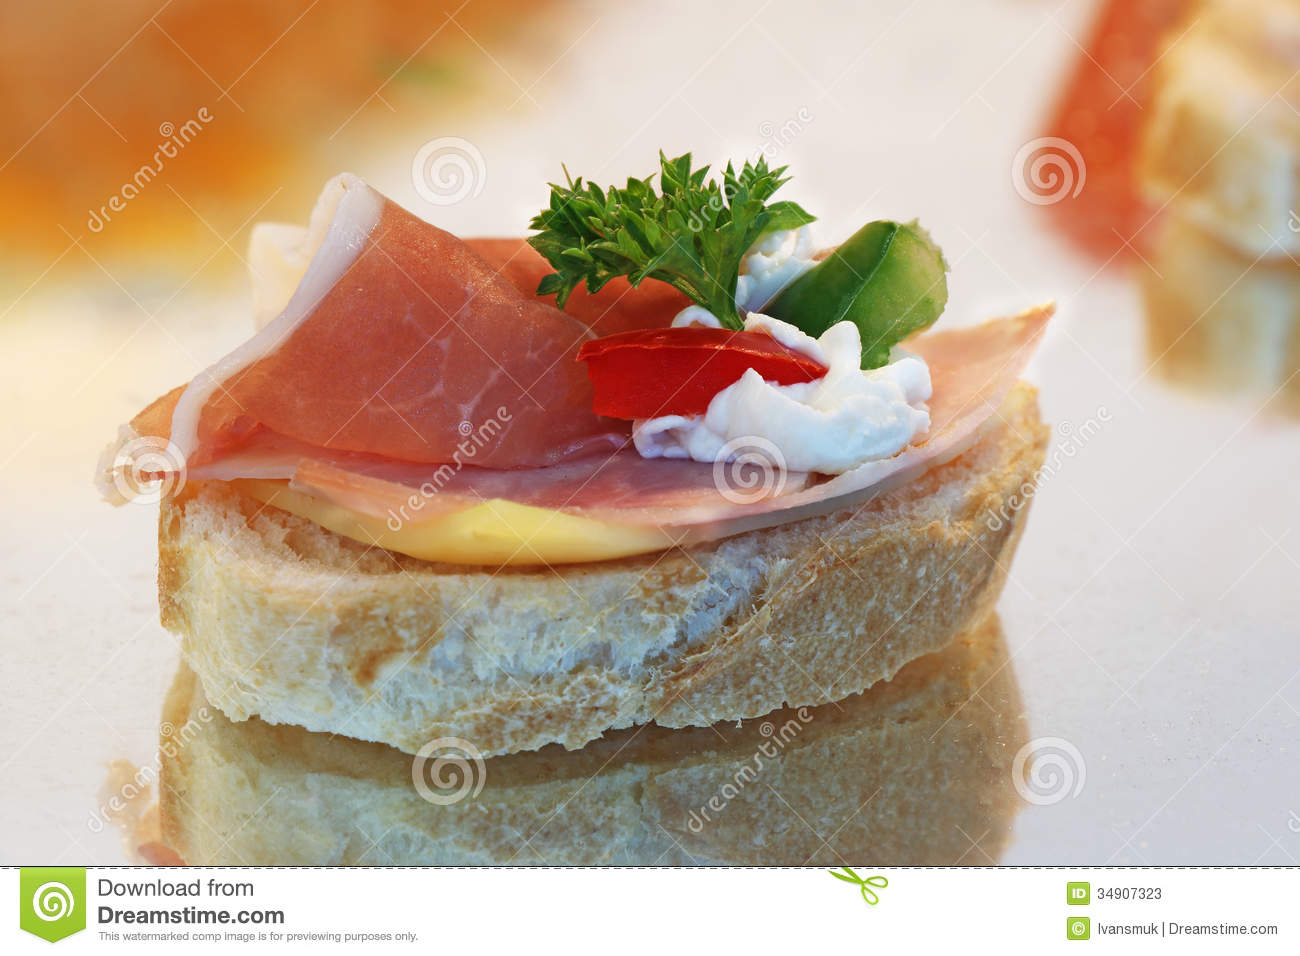 canape sandwich stock photos image 34907323